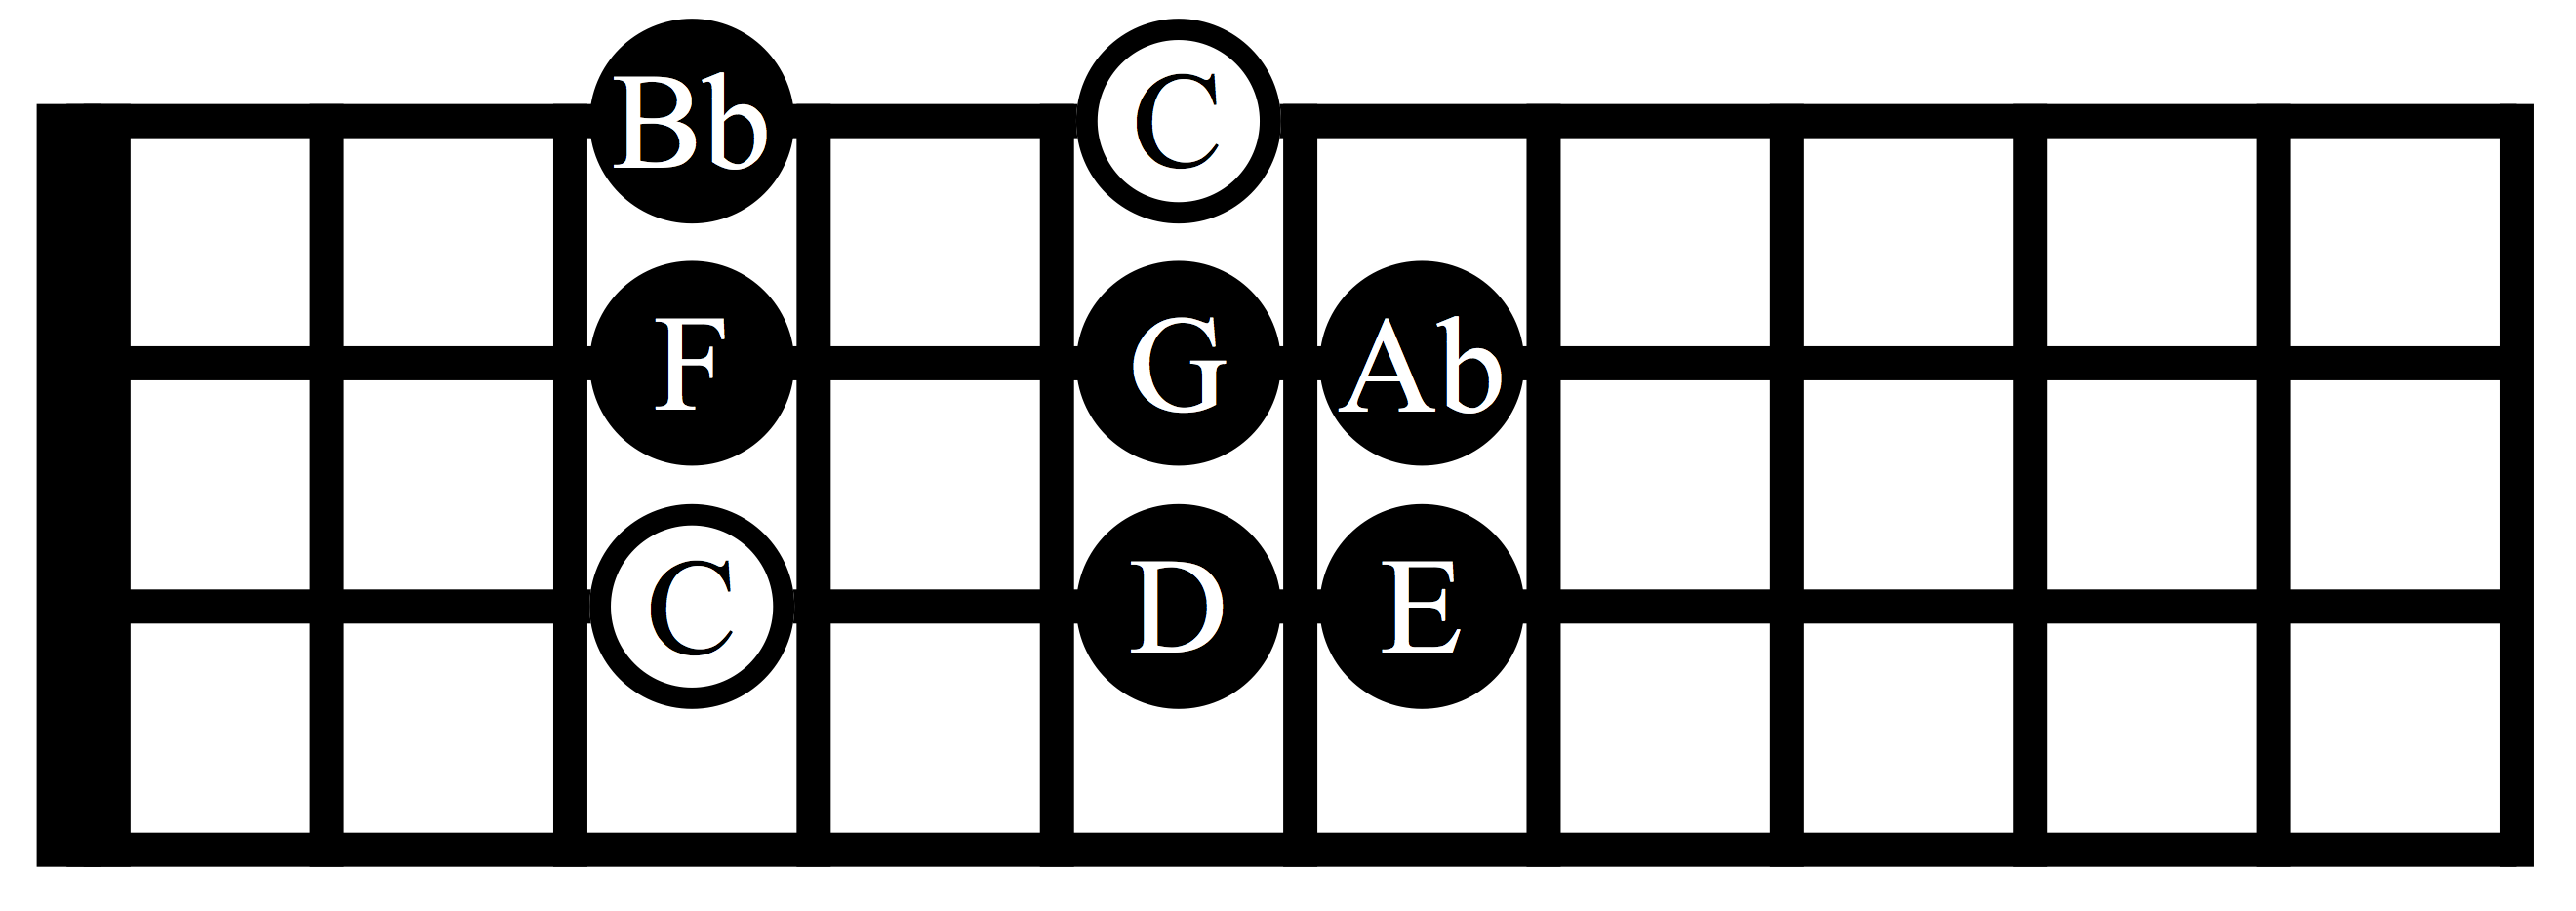 c minor scale on bass